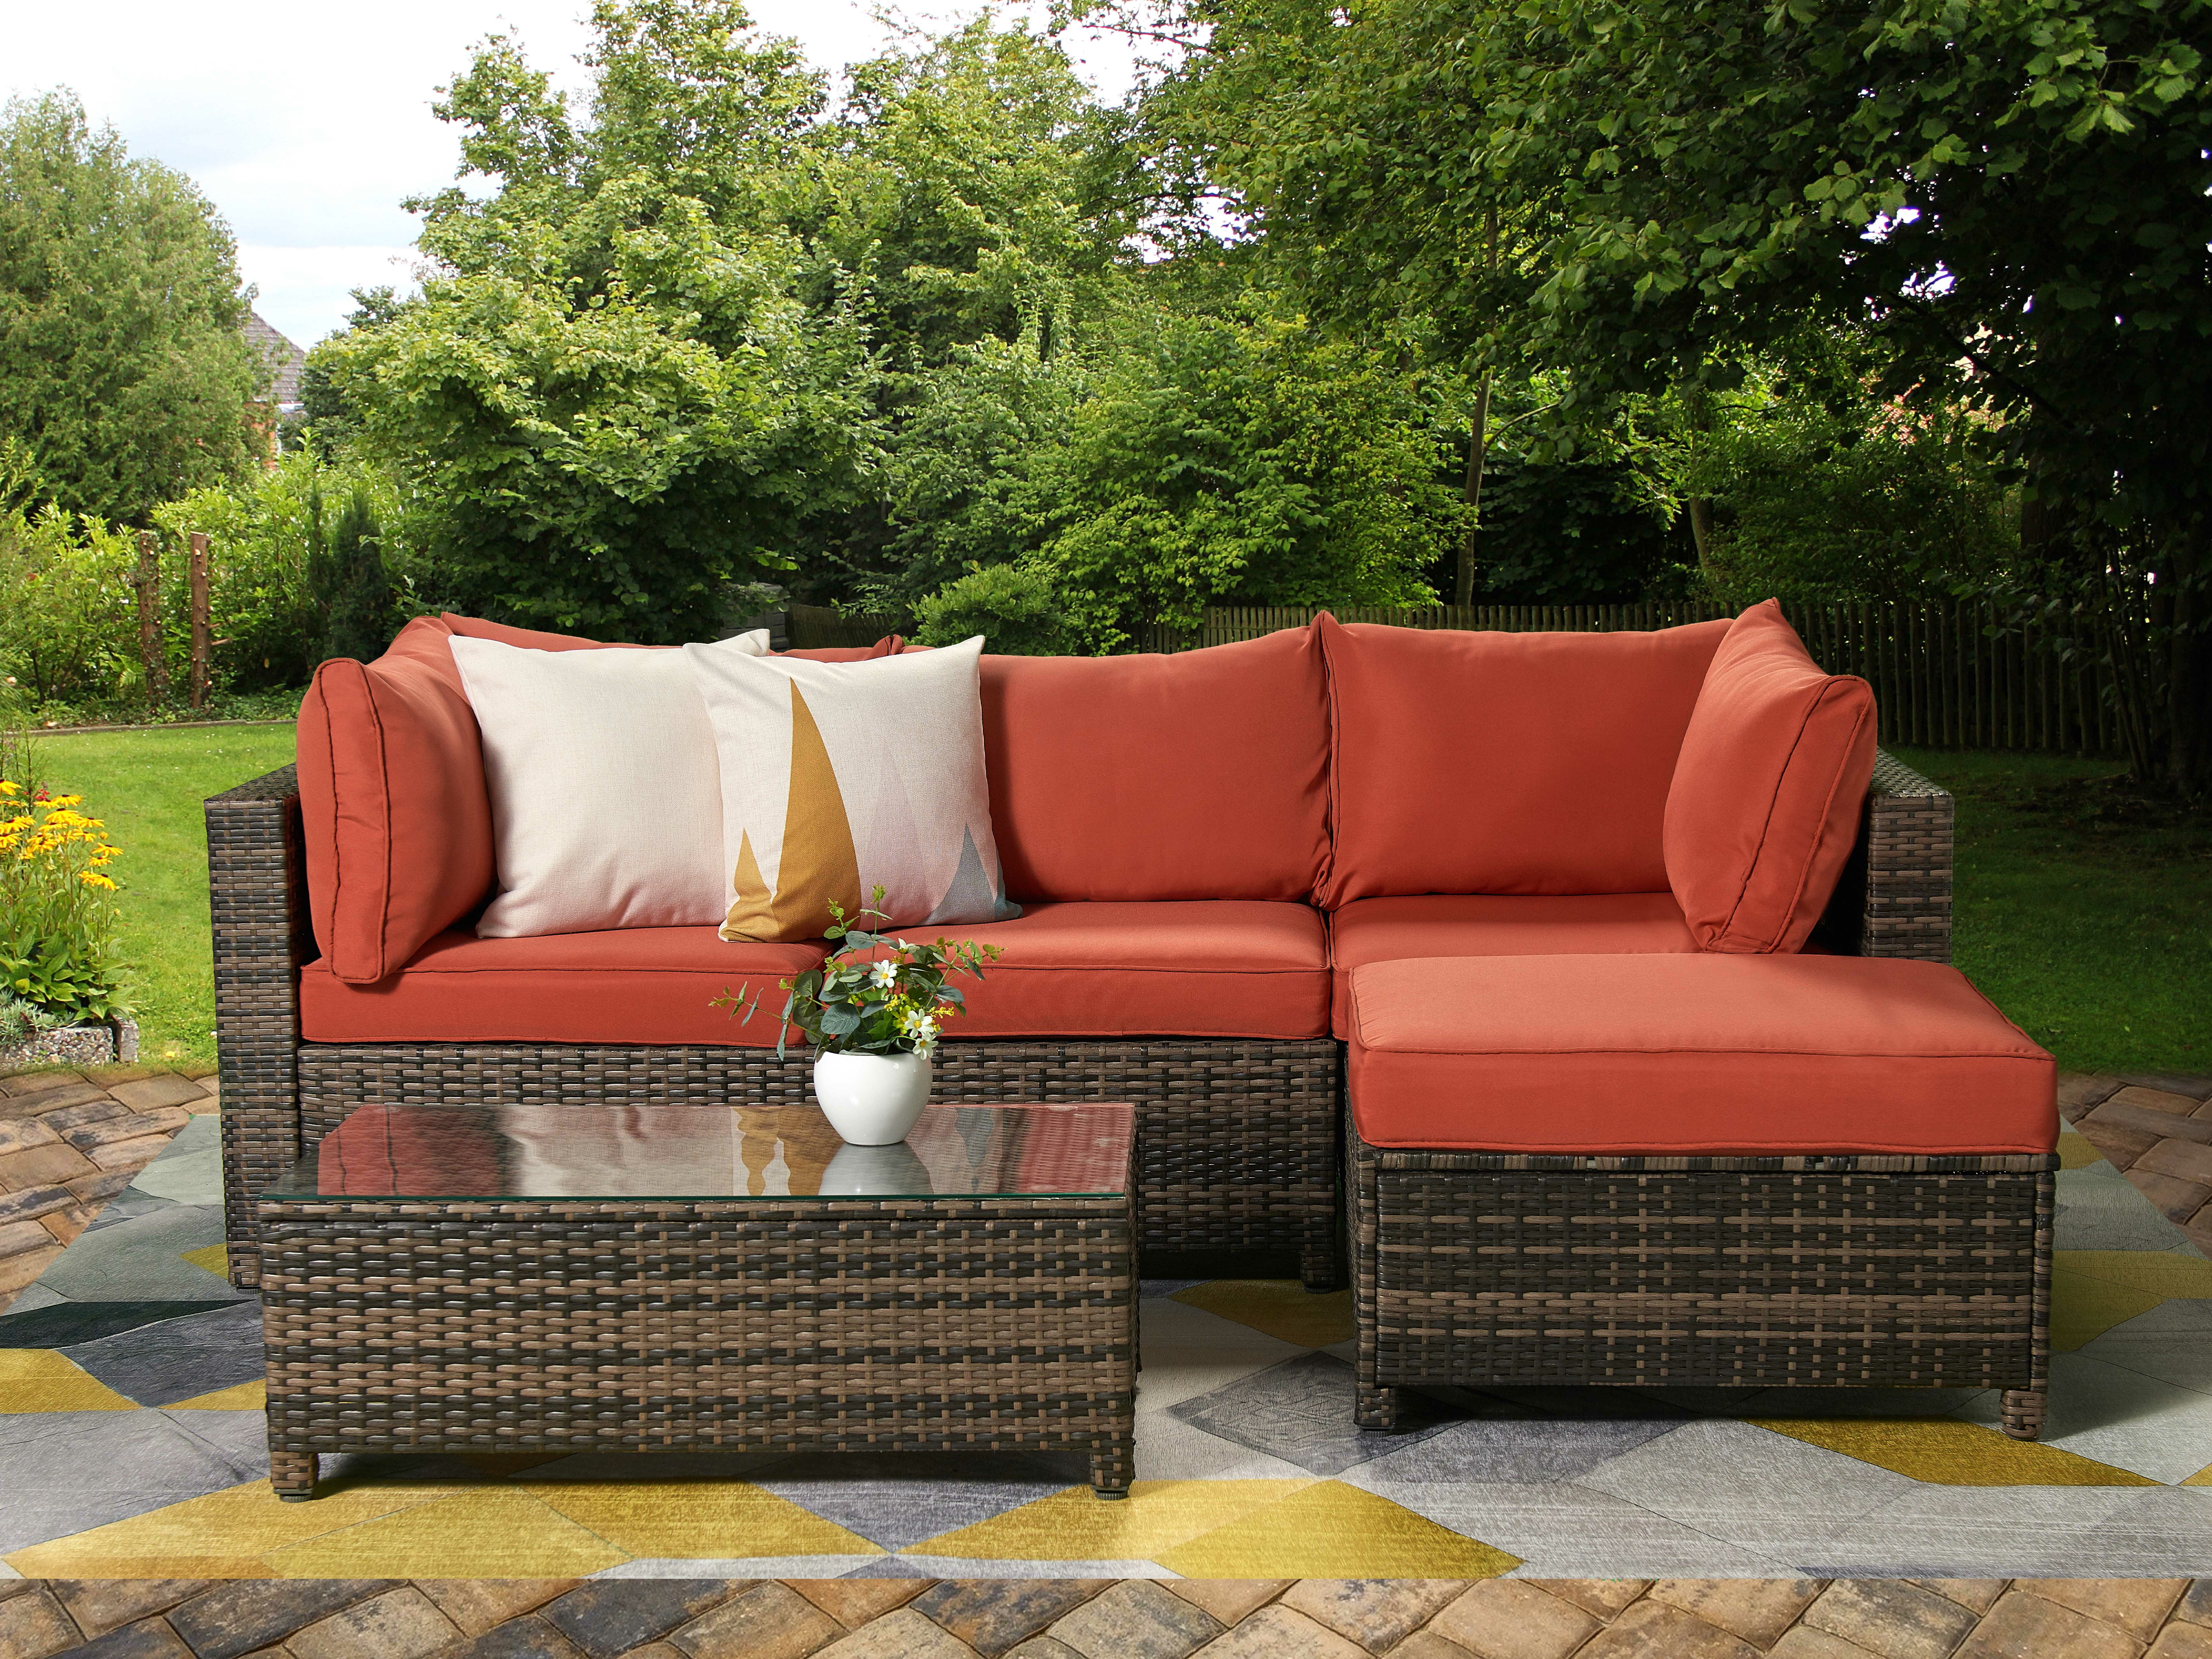 Purington Circular Patio Sectionals With Cushions Inside Famous Roni Patio Sectional With Cushions (View 15 of 20)